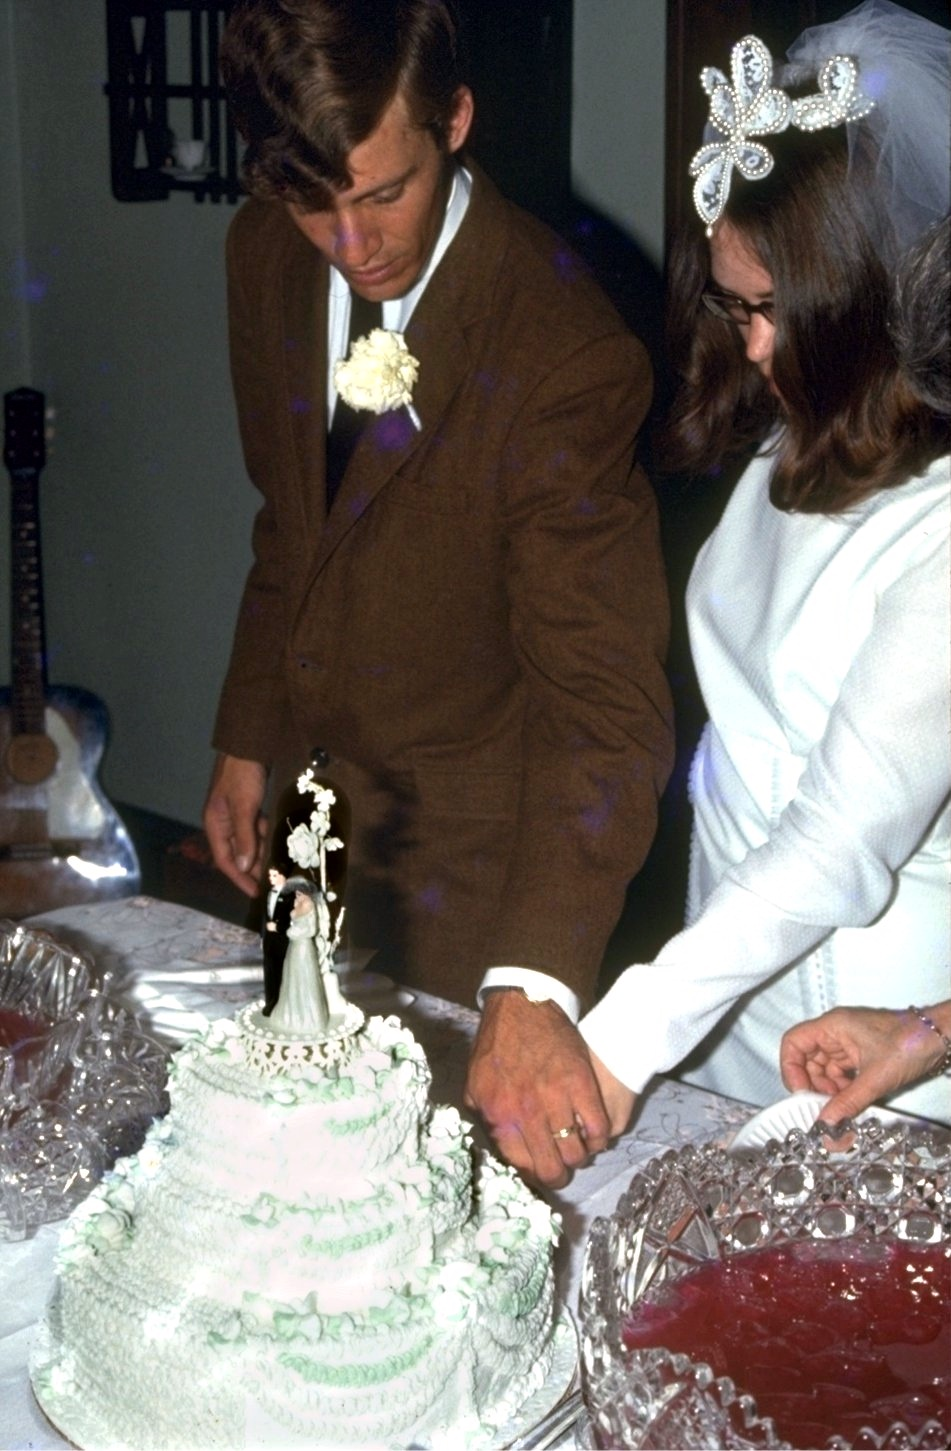 Mary Joan and Greg cutting the cake.